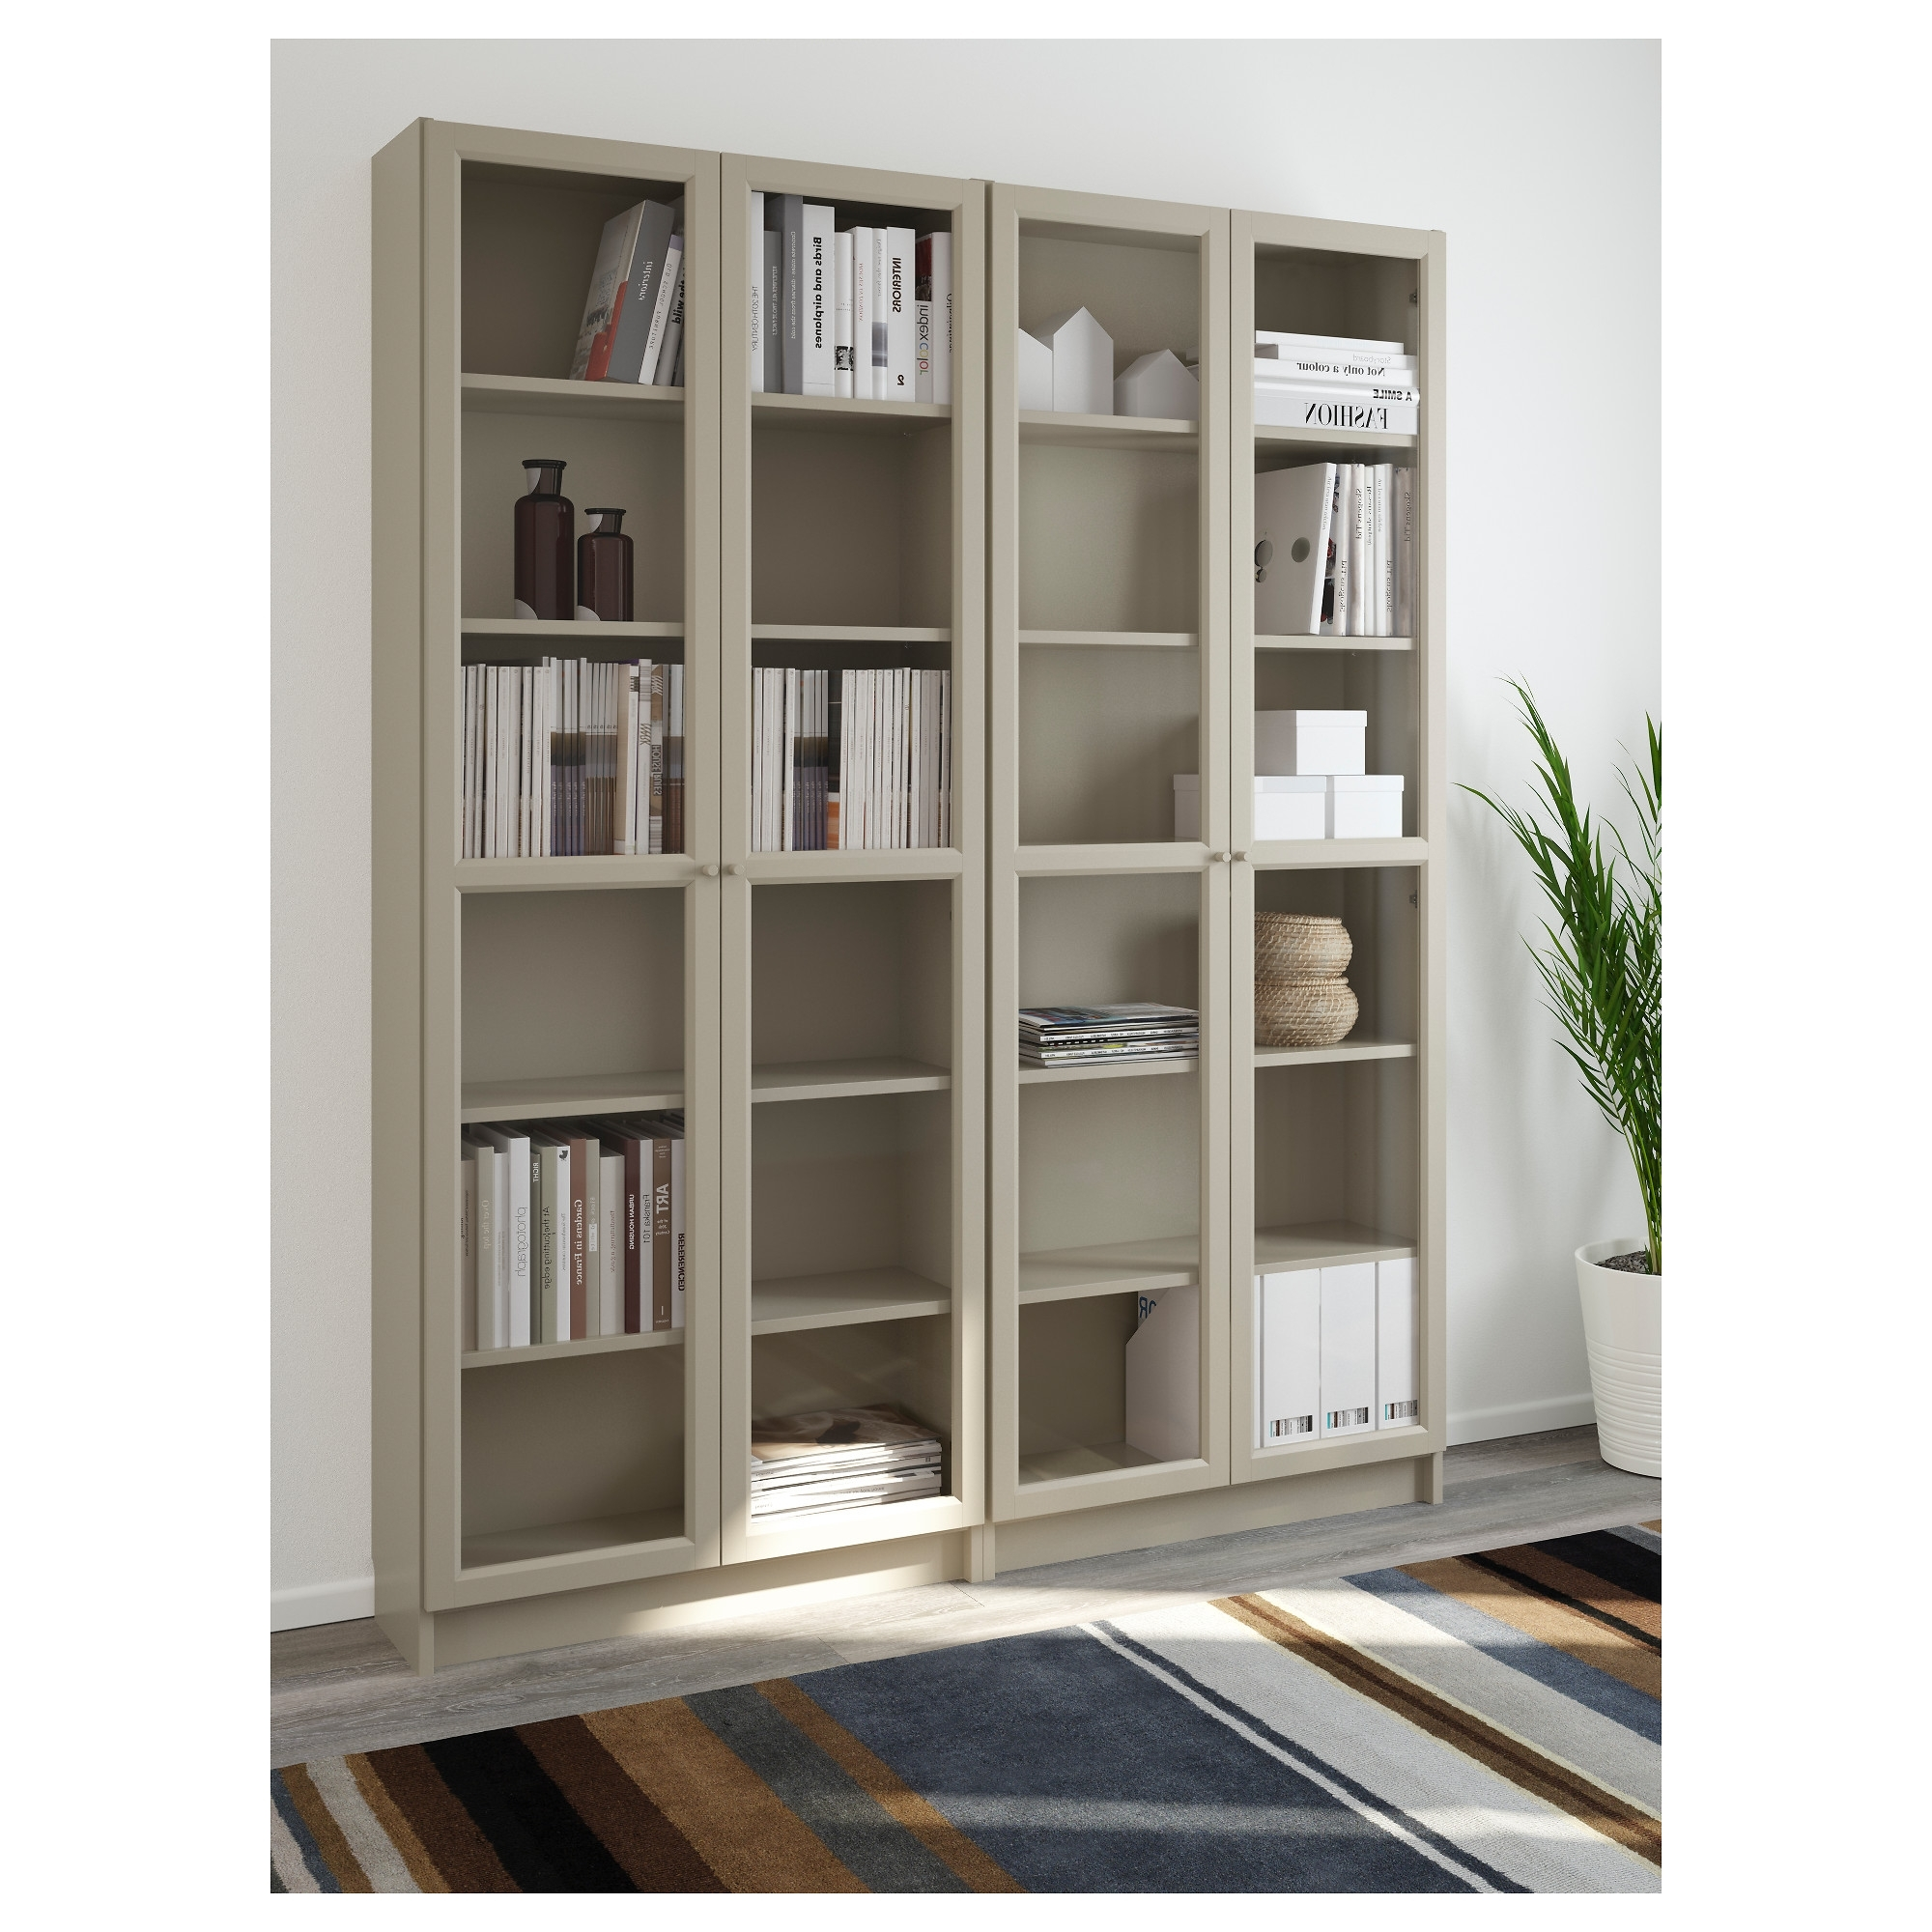 Ikea Billy Bookcases With Regard To Most Popular Billy Bookcase – Beige – Ikea (View 10 of 15)